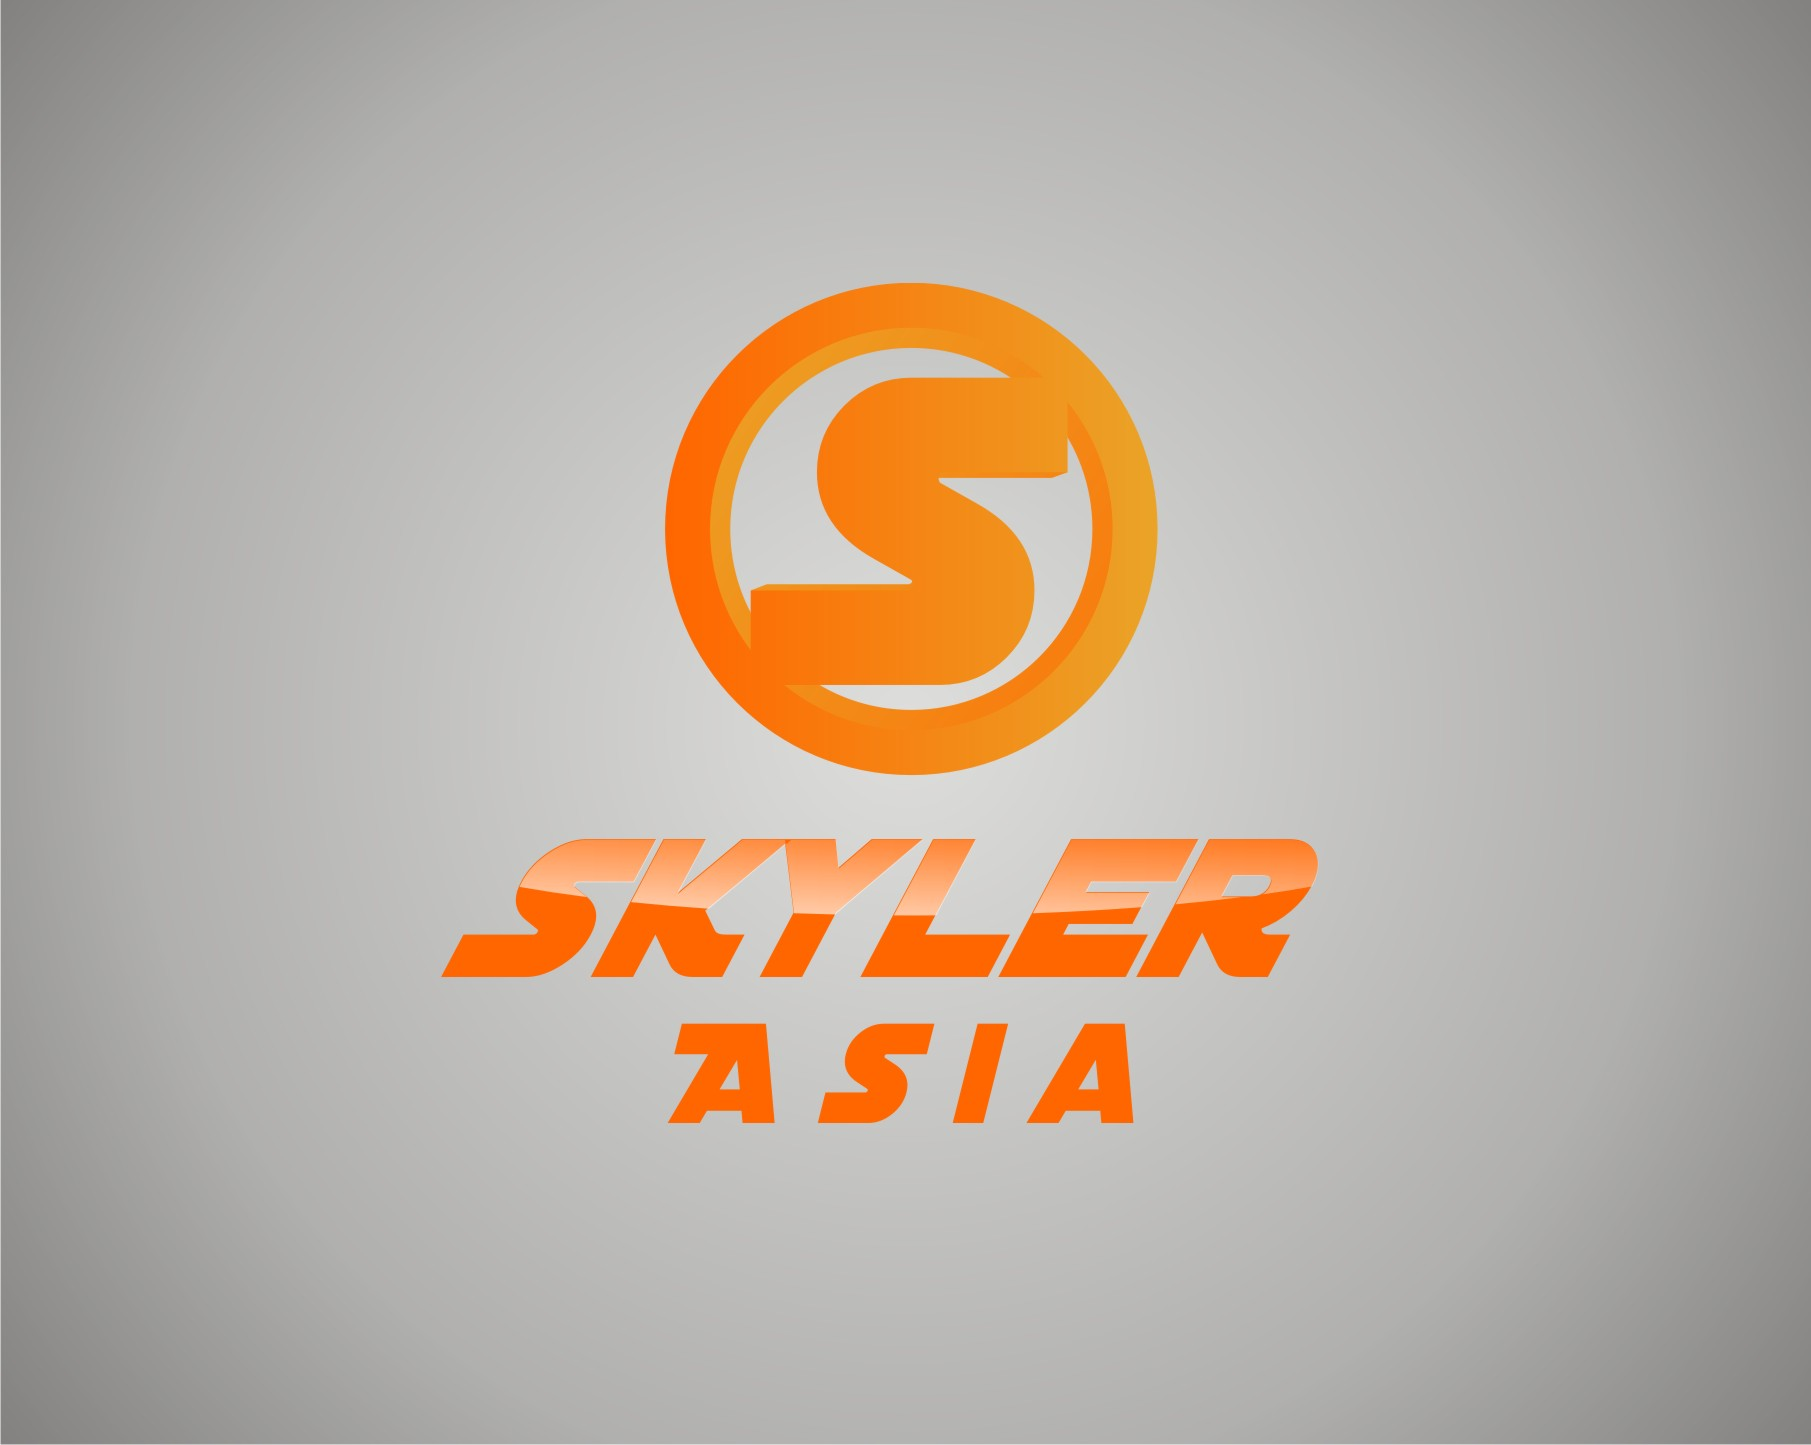 Logo Design by Choirul Jcd - Entry No. 88 in the Logo Design Contest Artistic Logo Design for Skyler.Asia.